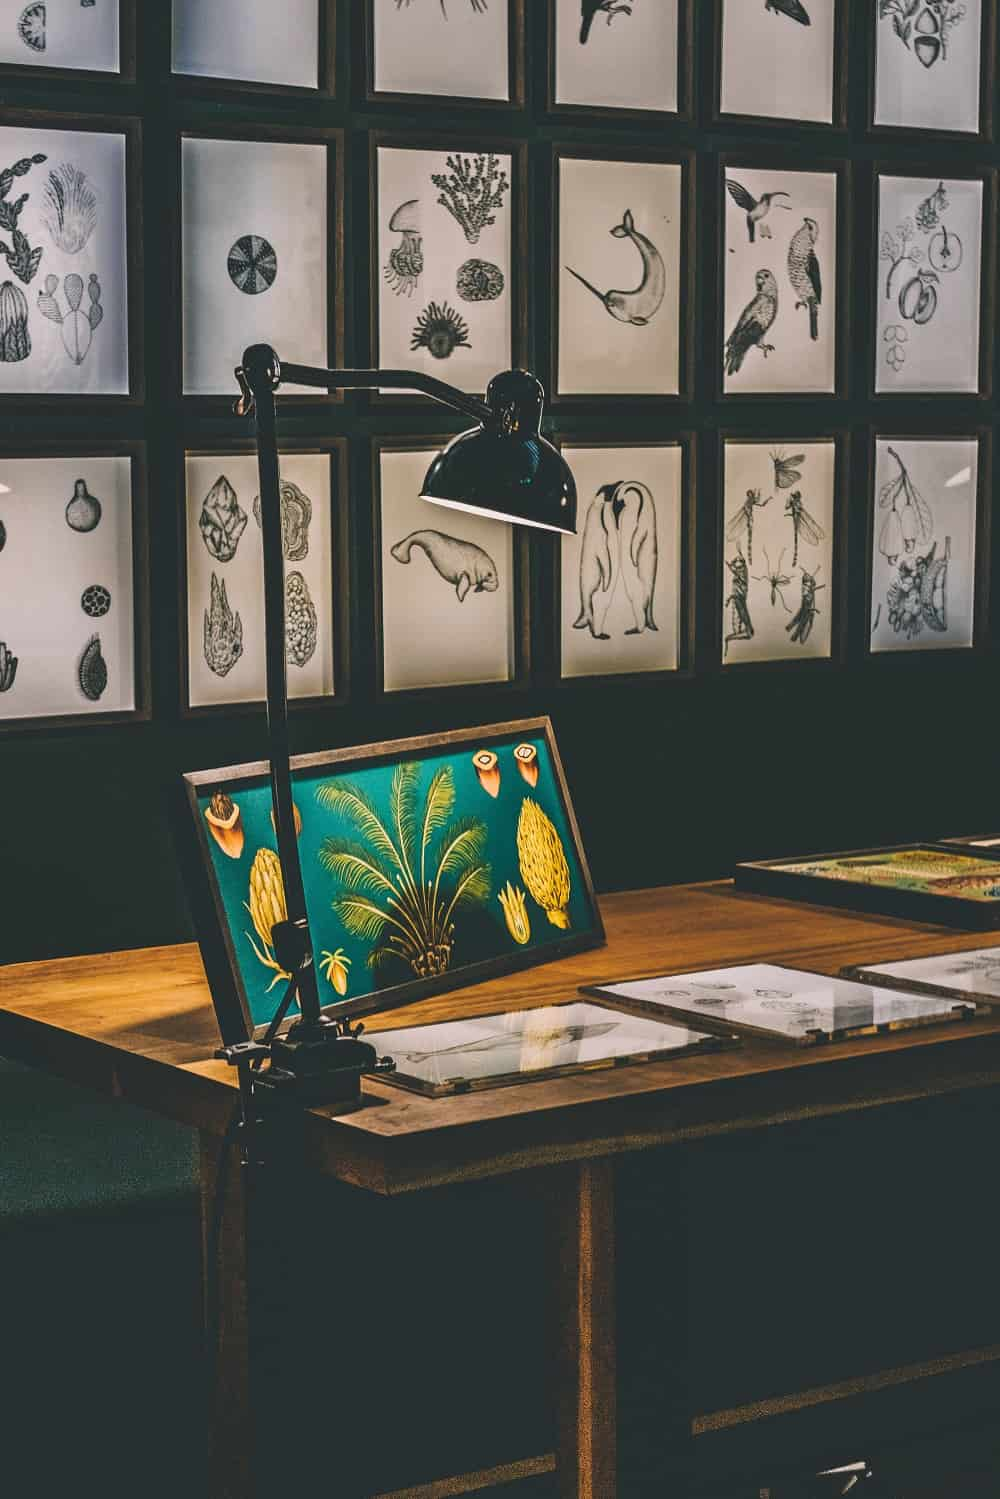 Framed illustrations spice up this home office and make it a conversation piece